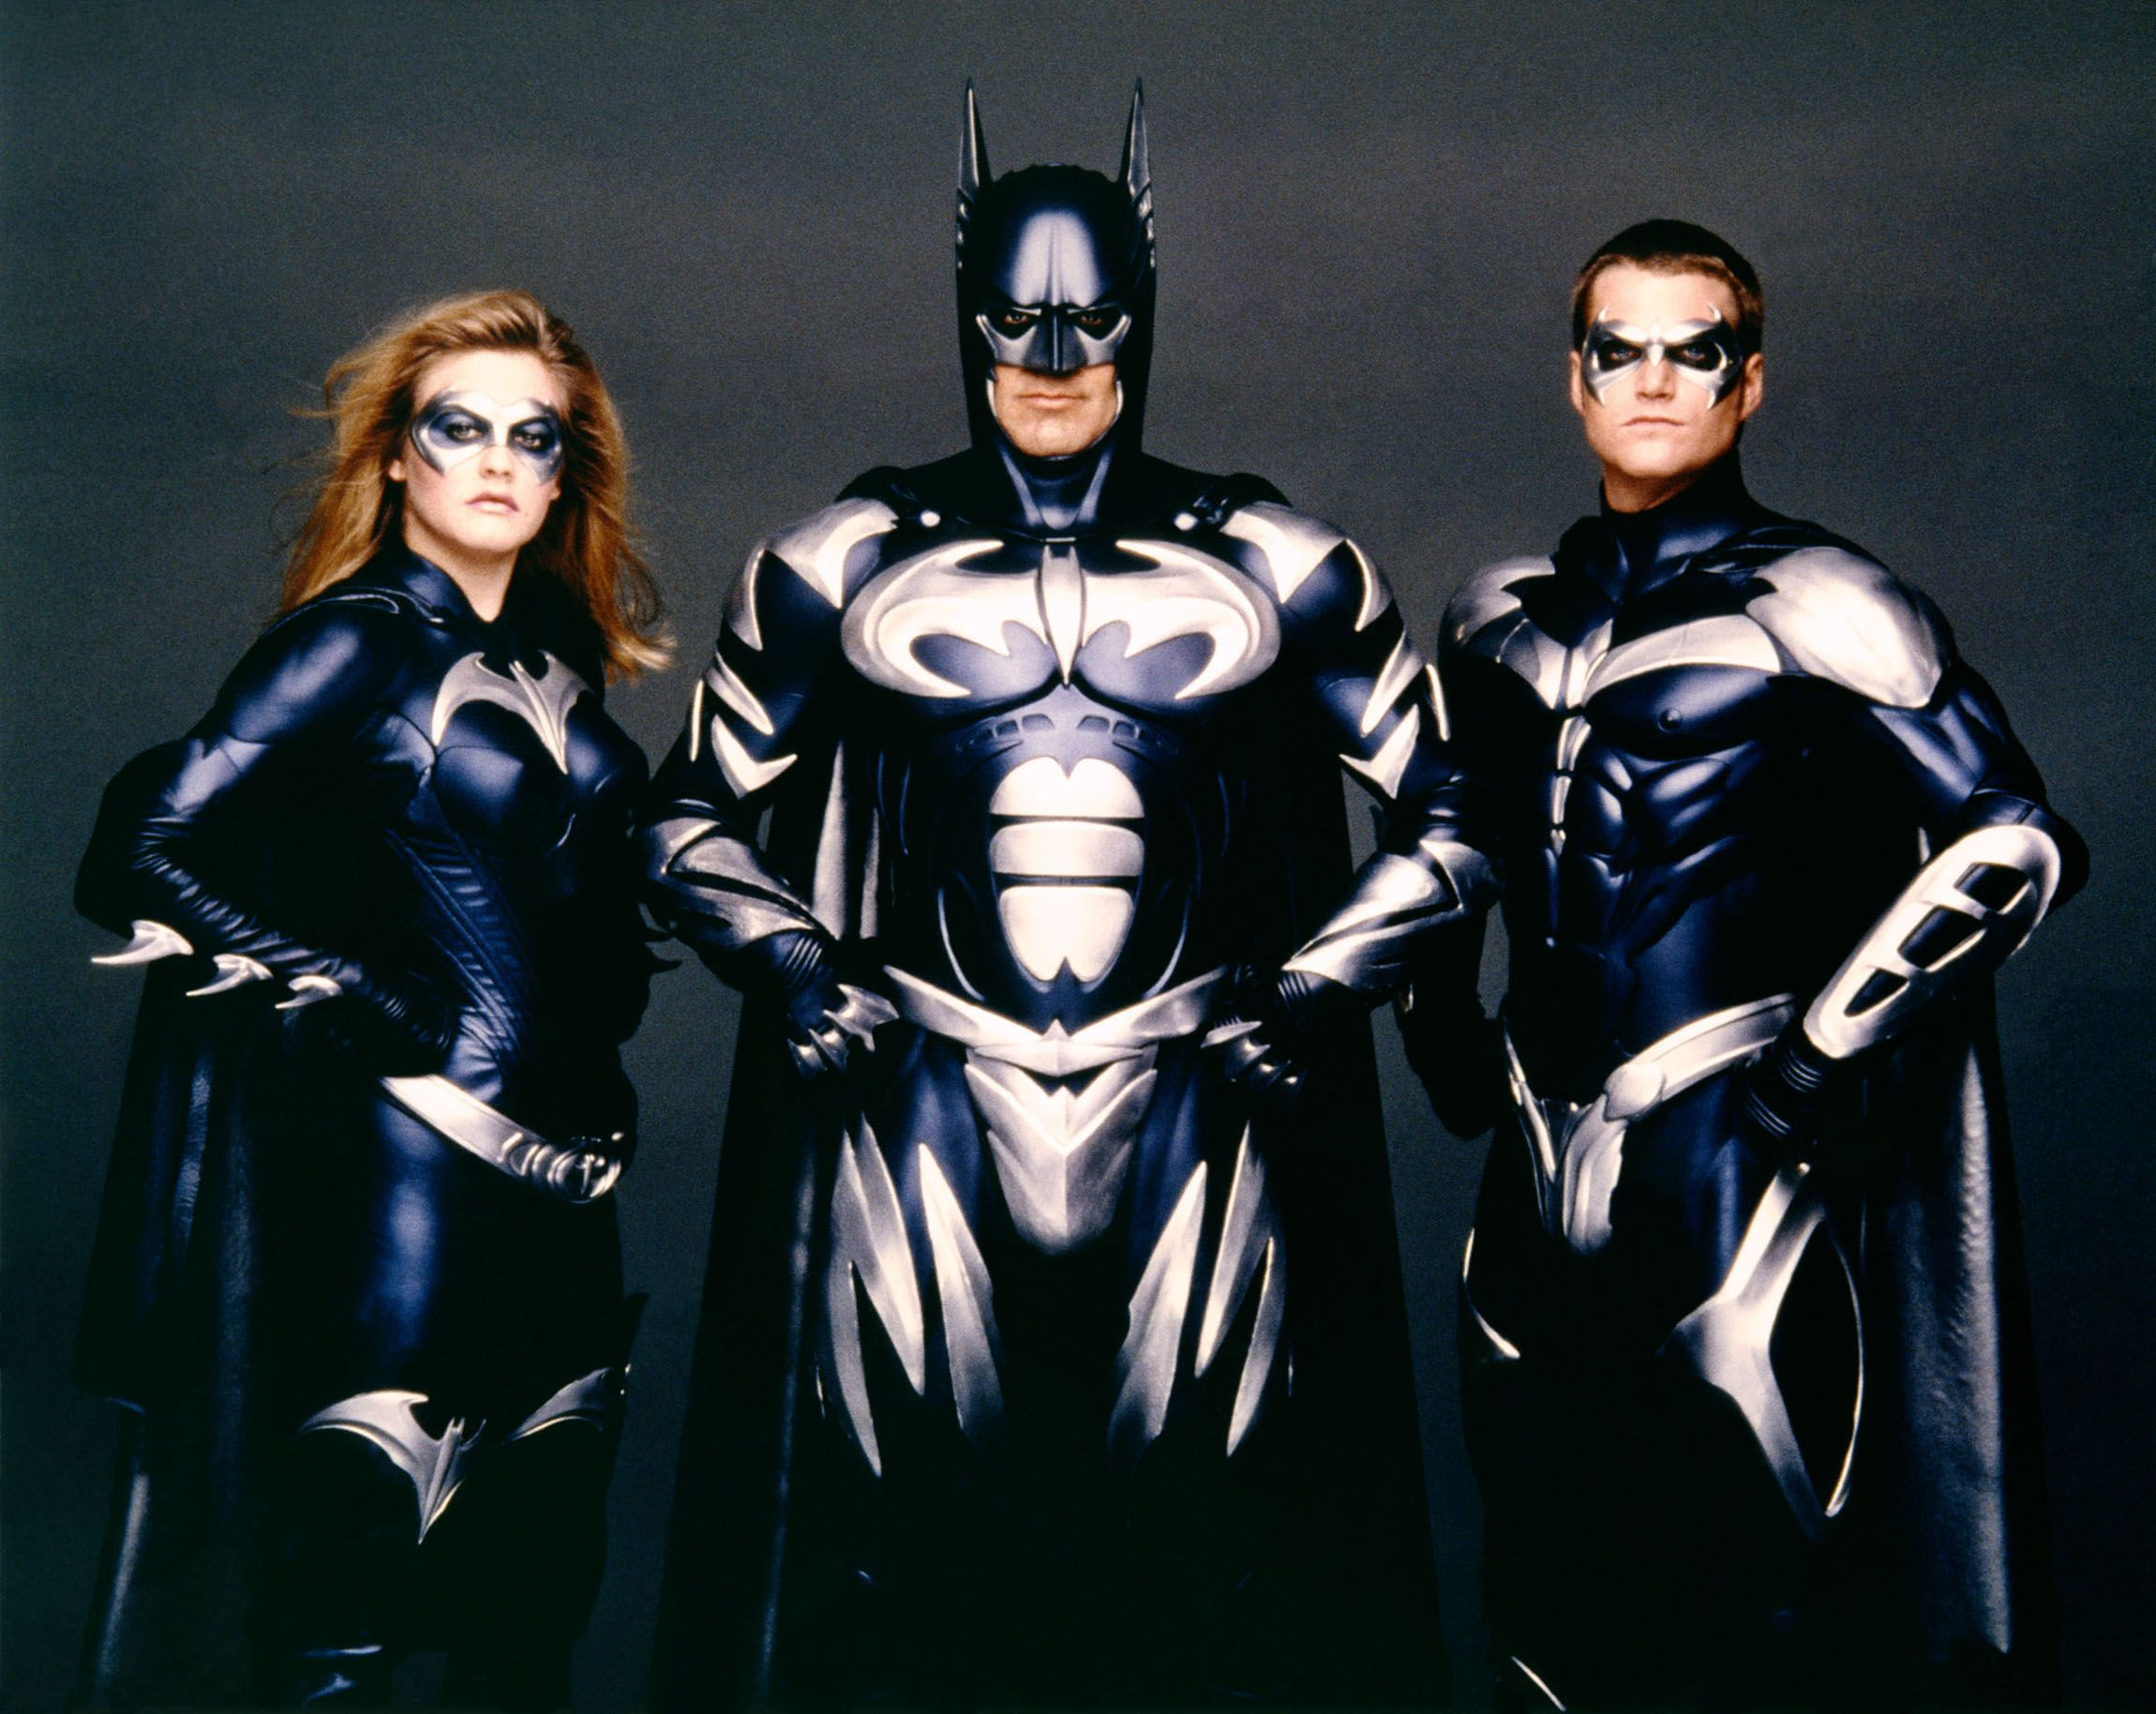 Alicia Silverstone, Clooney and Chris O'Donnell on the set of Batman & Robin , directed by Joel Schumacher in 1997.